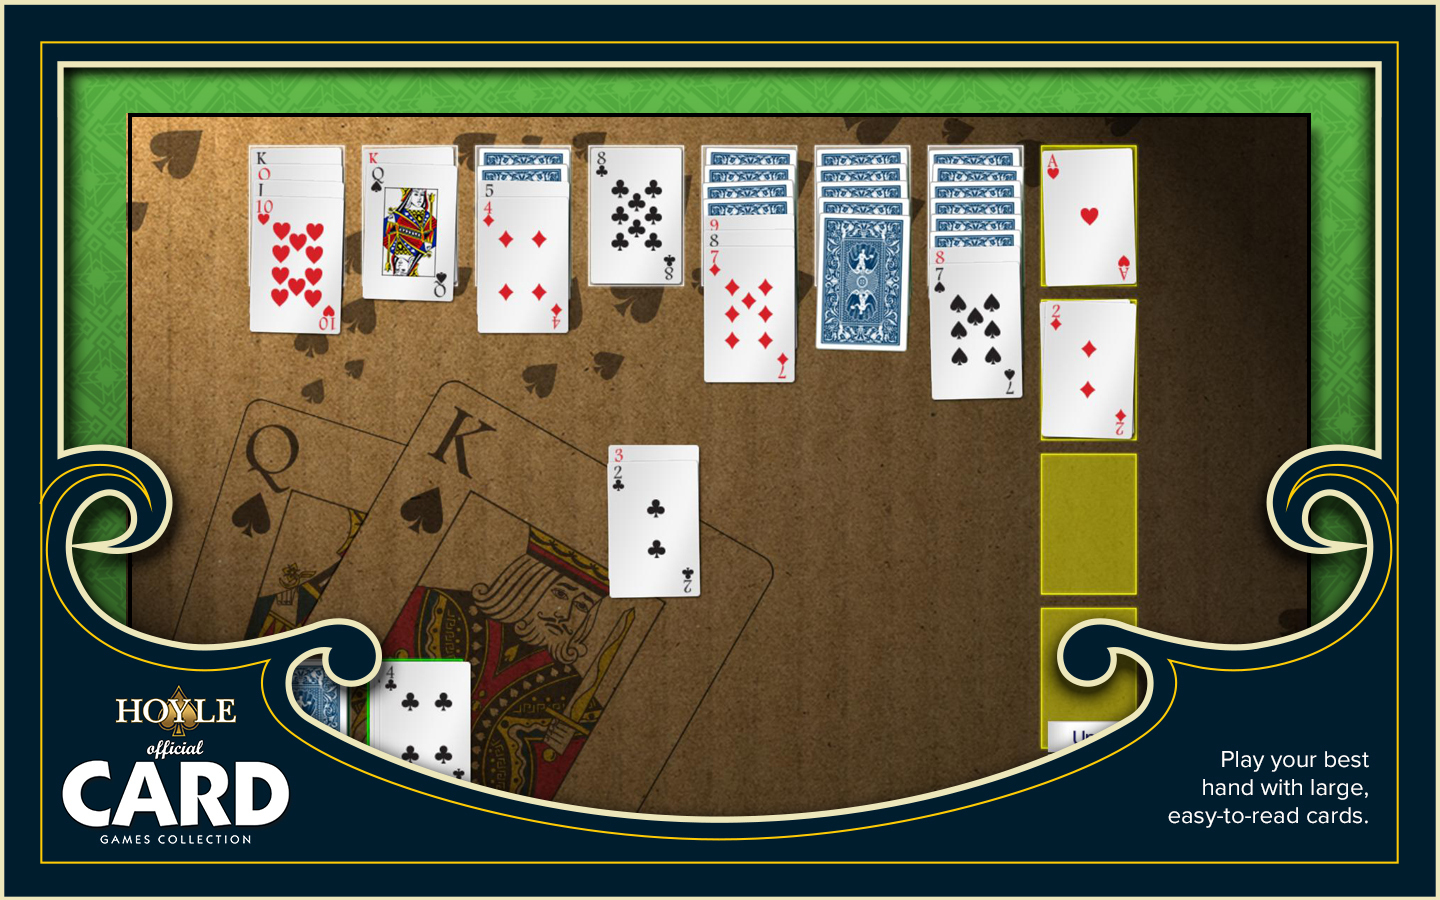 HOYLE Card Games Game Download Free for PC